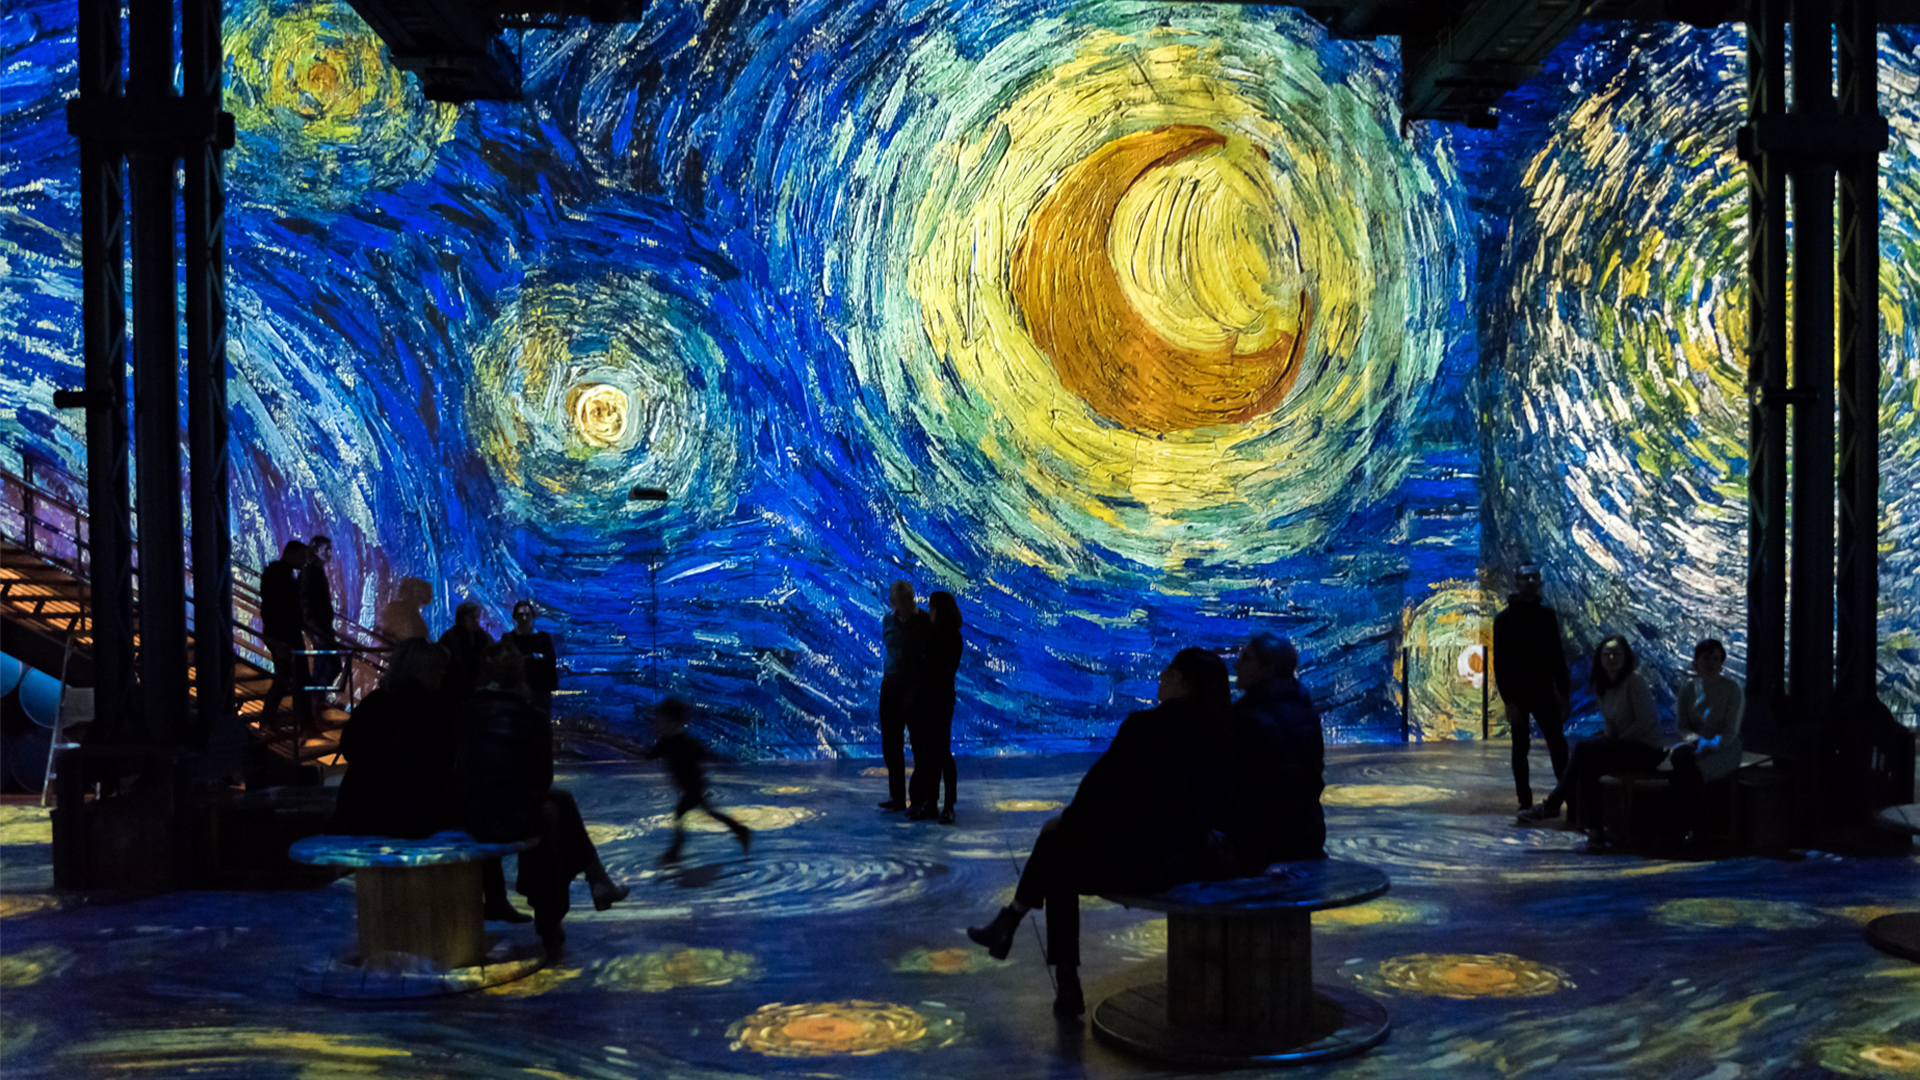 Simulation of the exhibition Gustav Klimt, Installation view 1 | Gustav Klimt | Atelier des Lumières | STIR